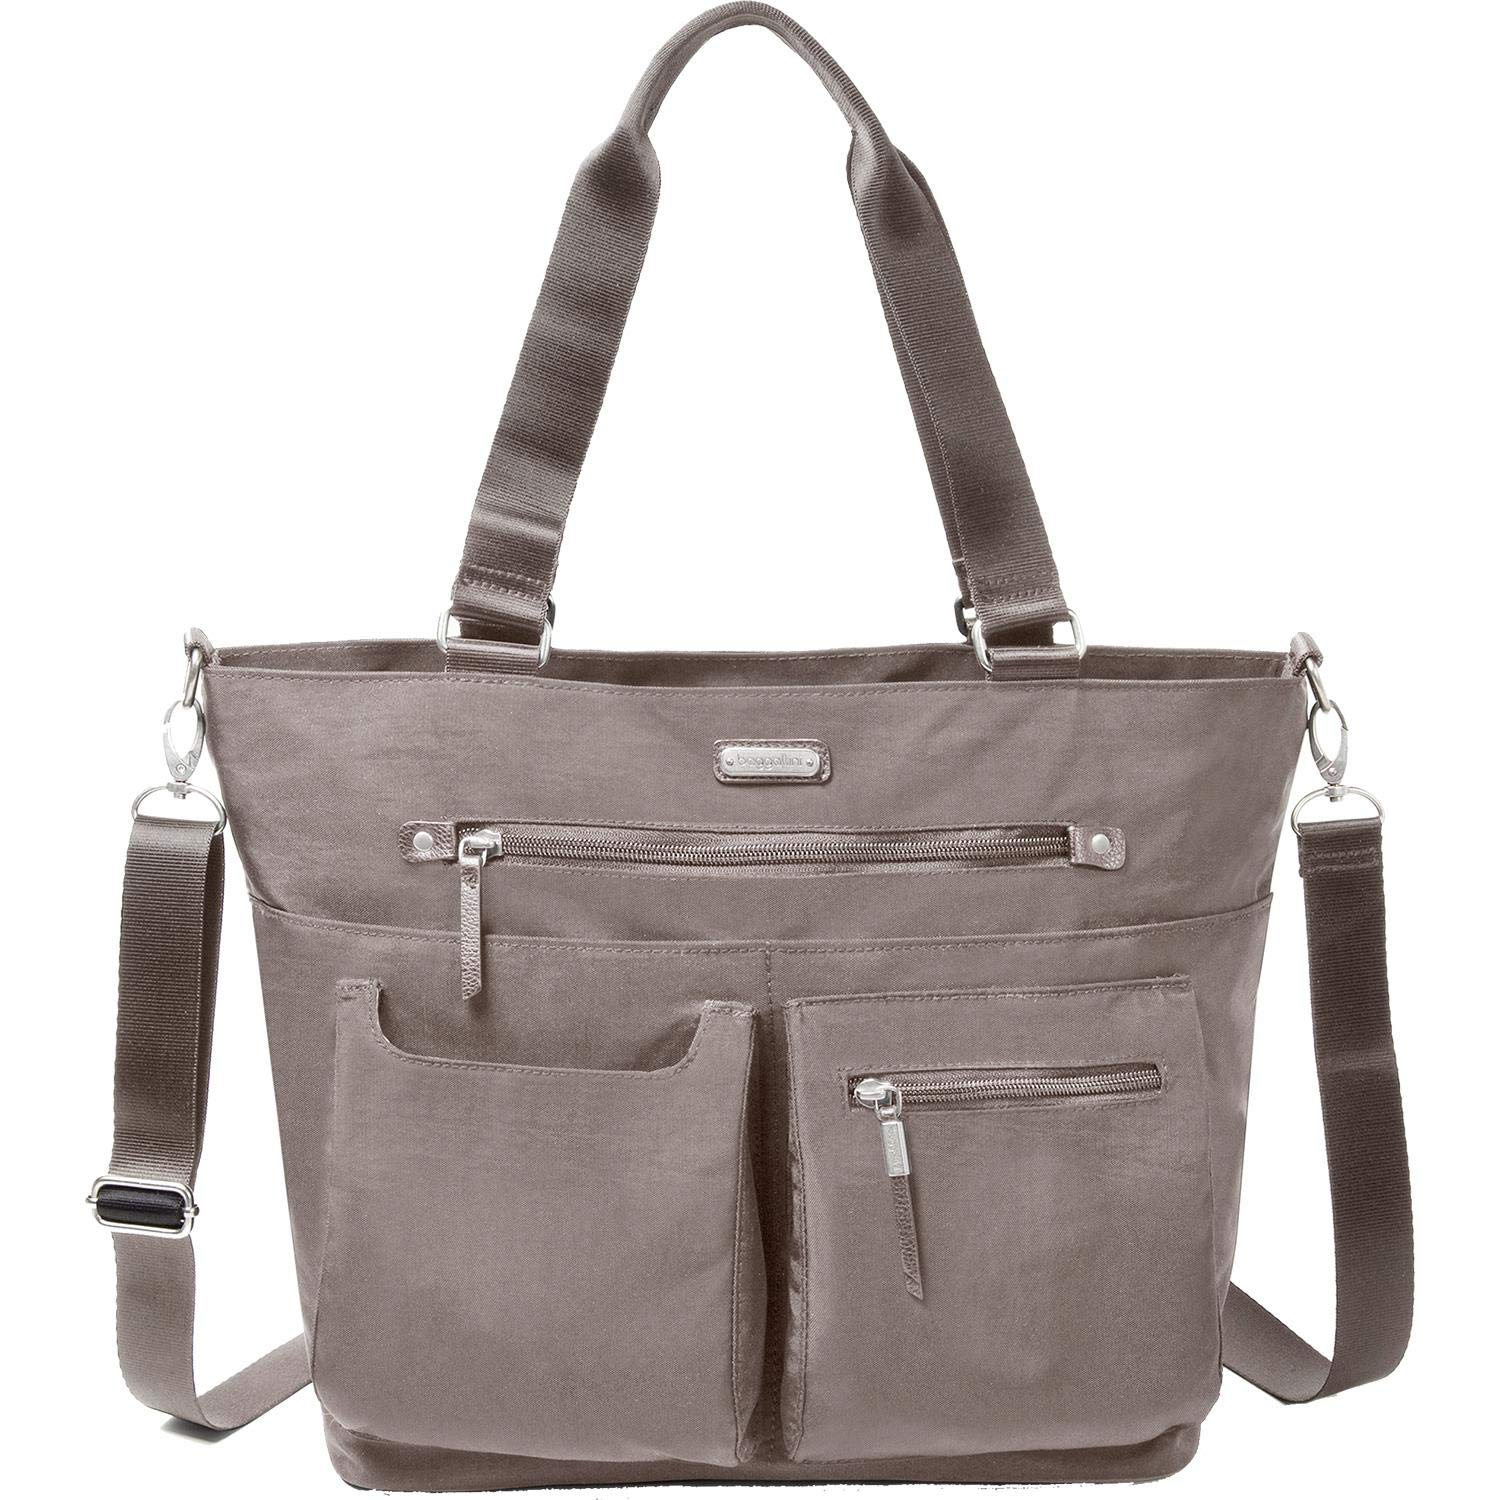 baggallini Any Day Tote with RFID Phone Wristlet (Sterling Shimmer)